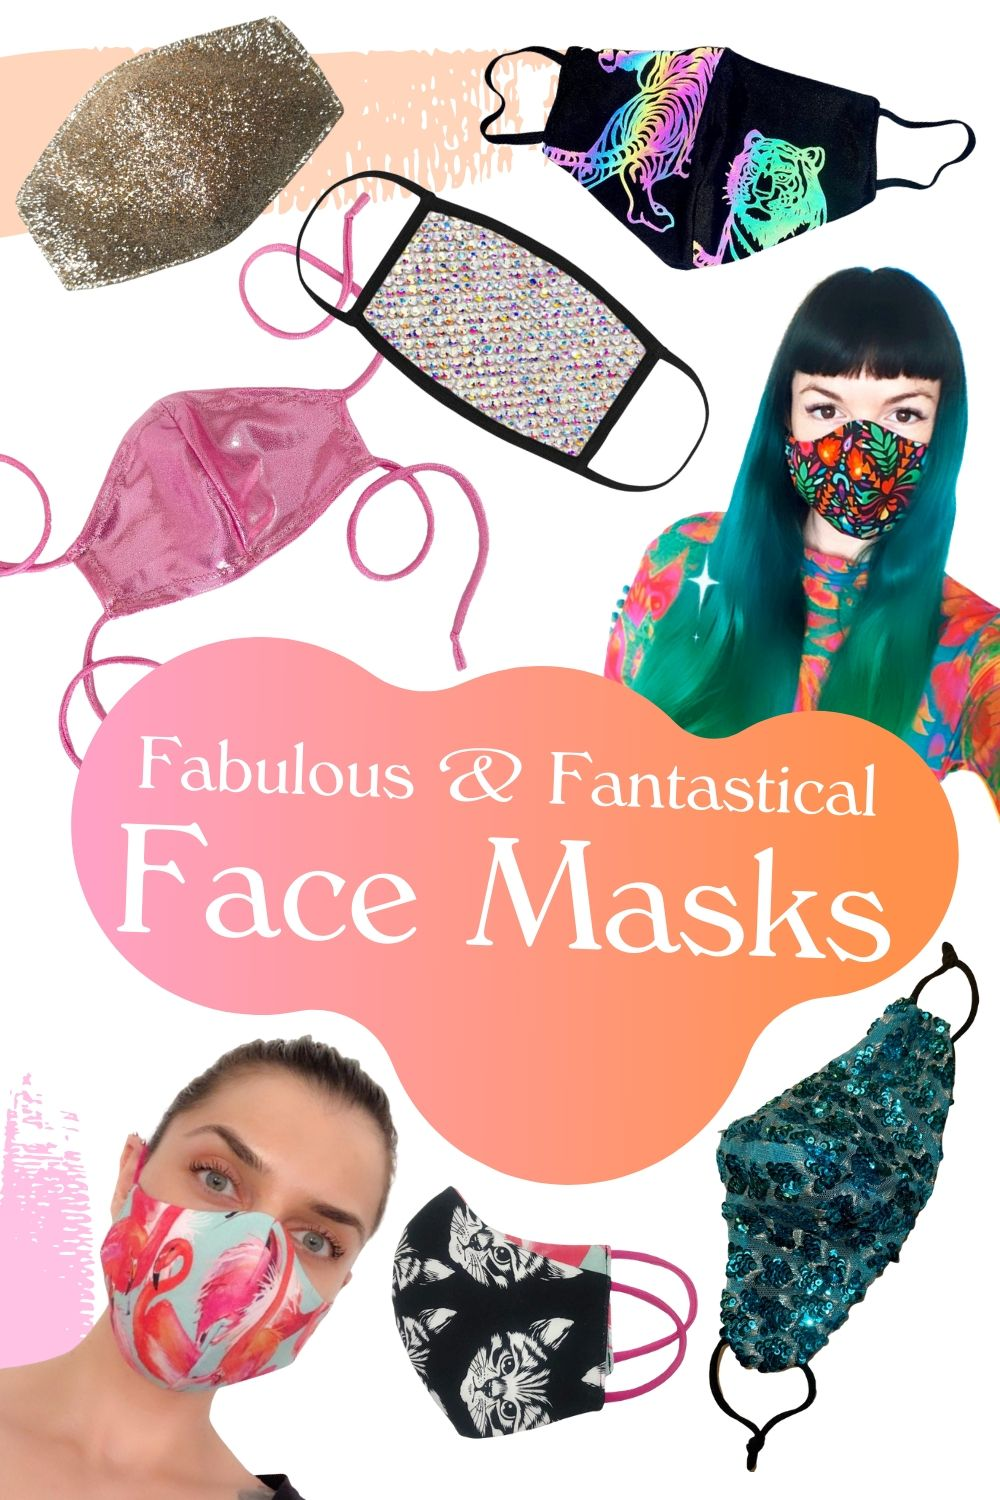 Fun & Fashionable Face Masks handmade by Independent Designers